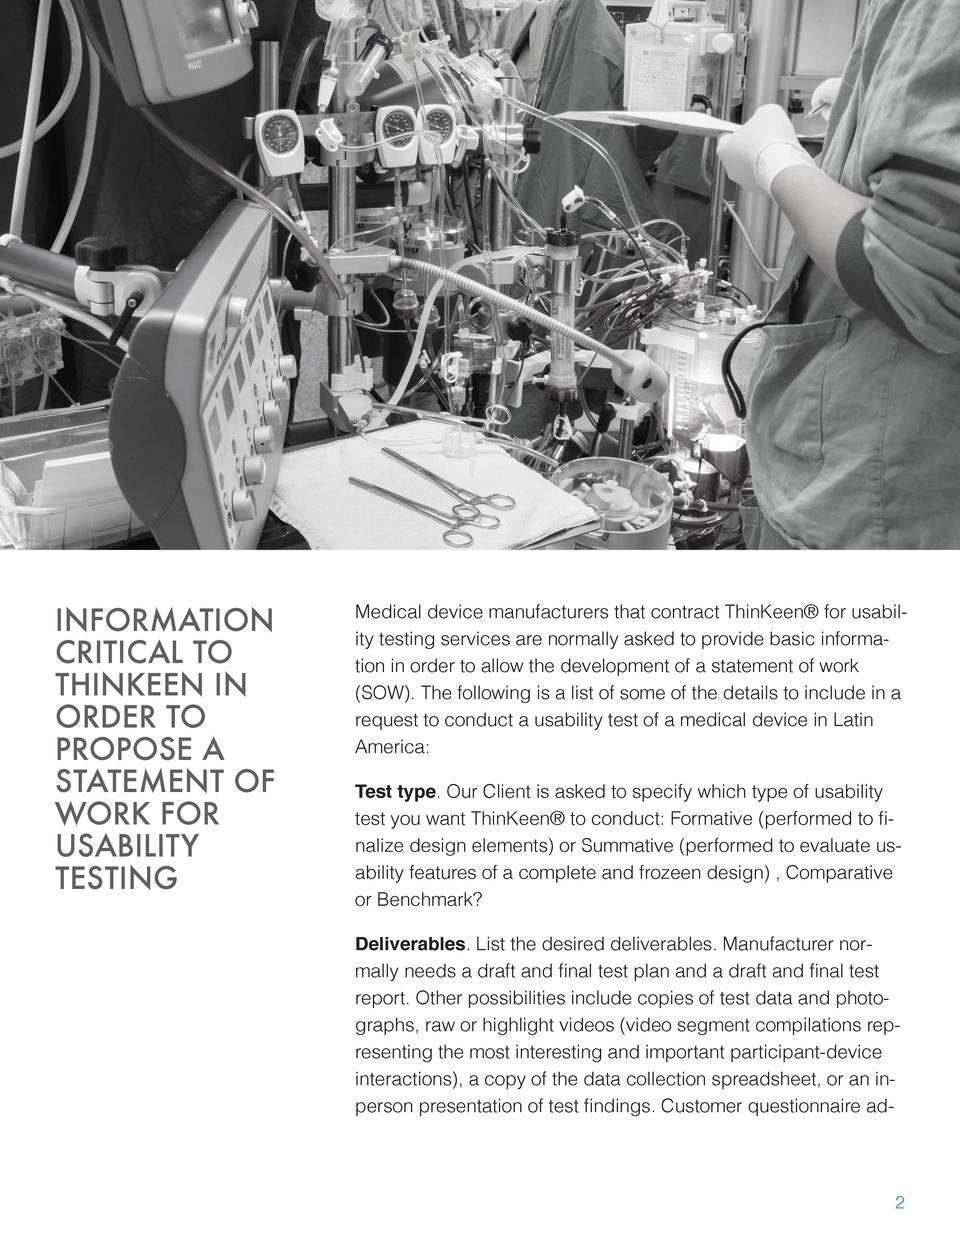 INFORMATION CRITICAL TO THINKEEN IN ORDER TO PROPOSE A STATEMENT OF WORK FOR USABILITY TESTING  Medical device manufacture...